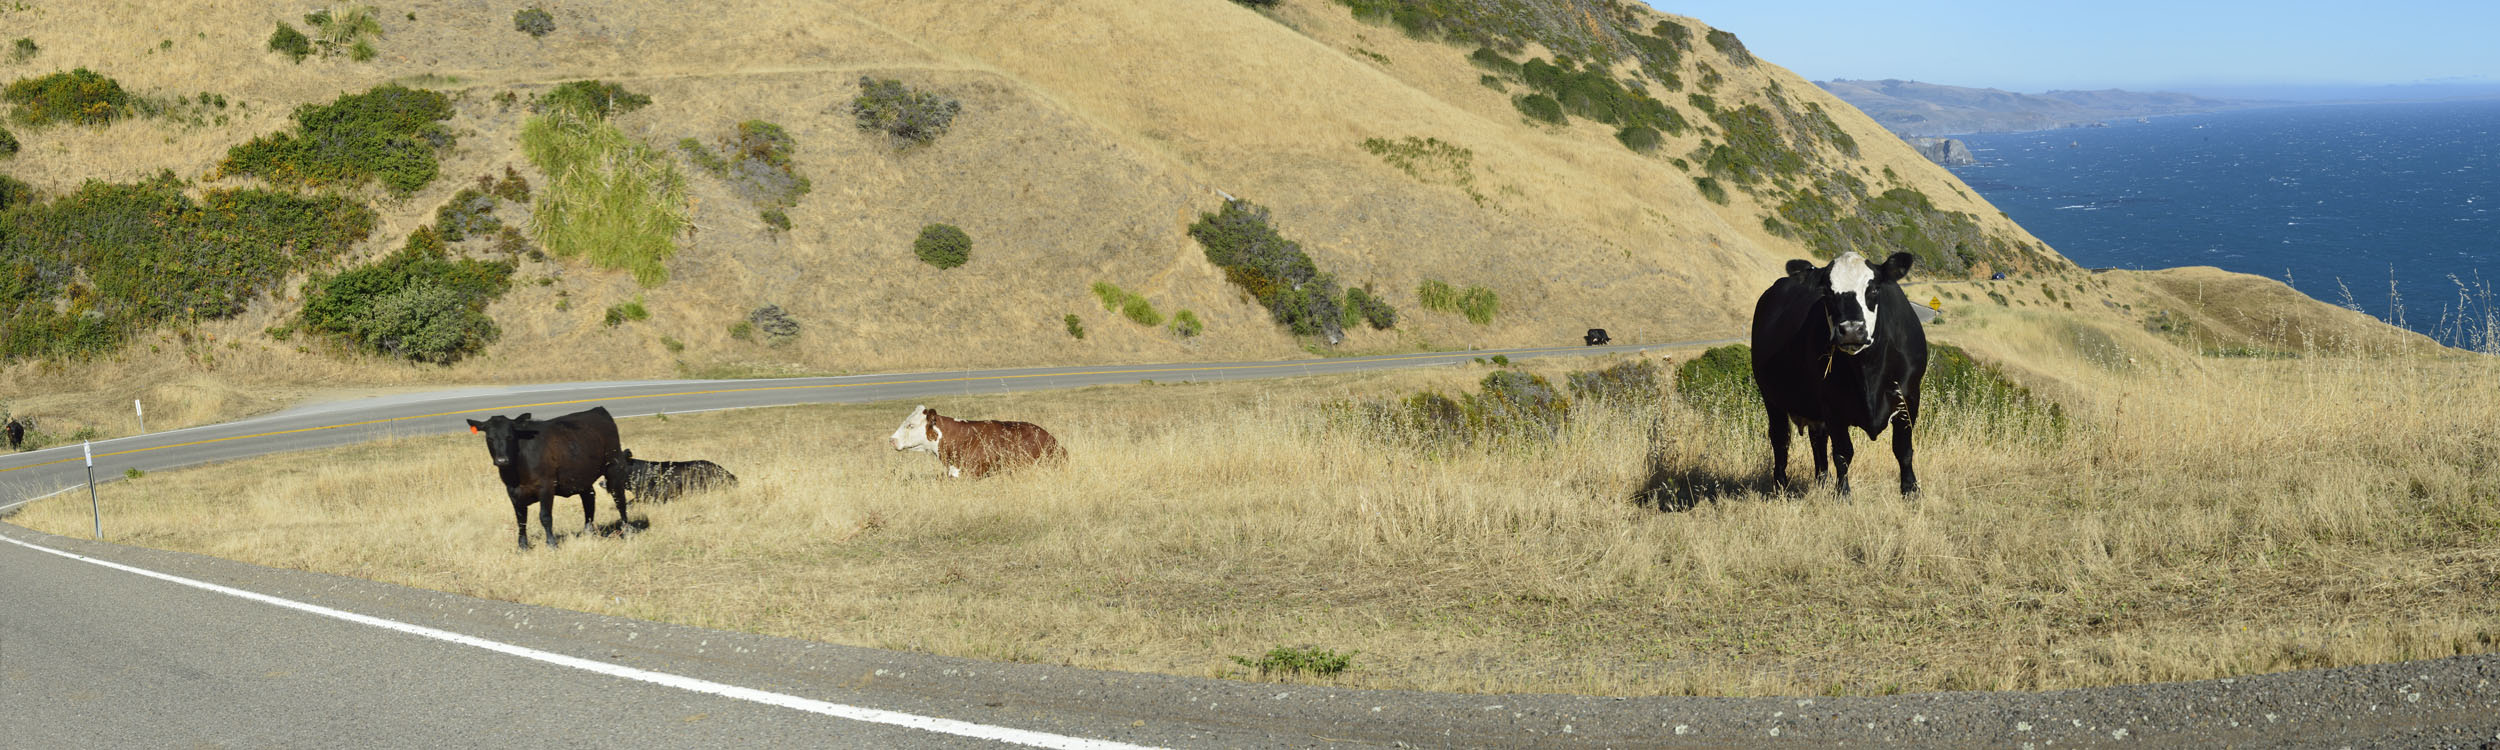 Cattle Along Coastal Highway, CA